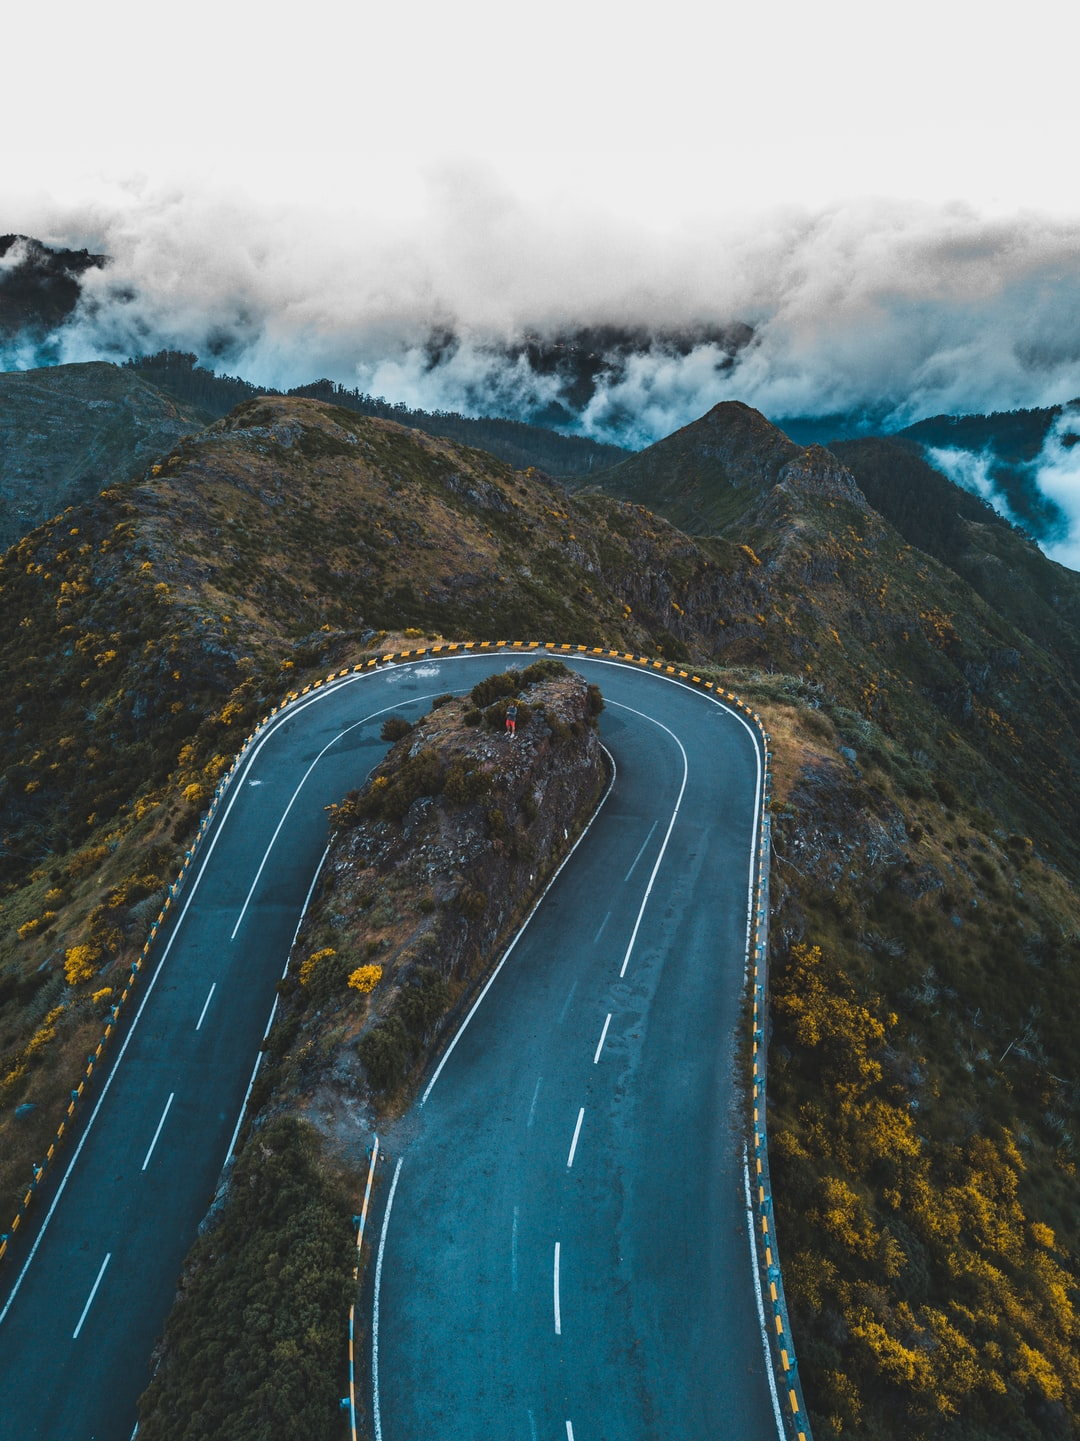 While driving in Madeira we came up to this U turn on the side of a bluff. The clouds were moving faster than any I had ever seen before. We took this with a Mavic Pro drone.